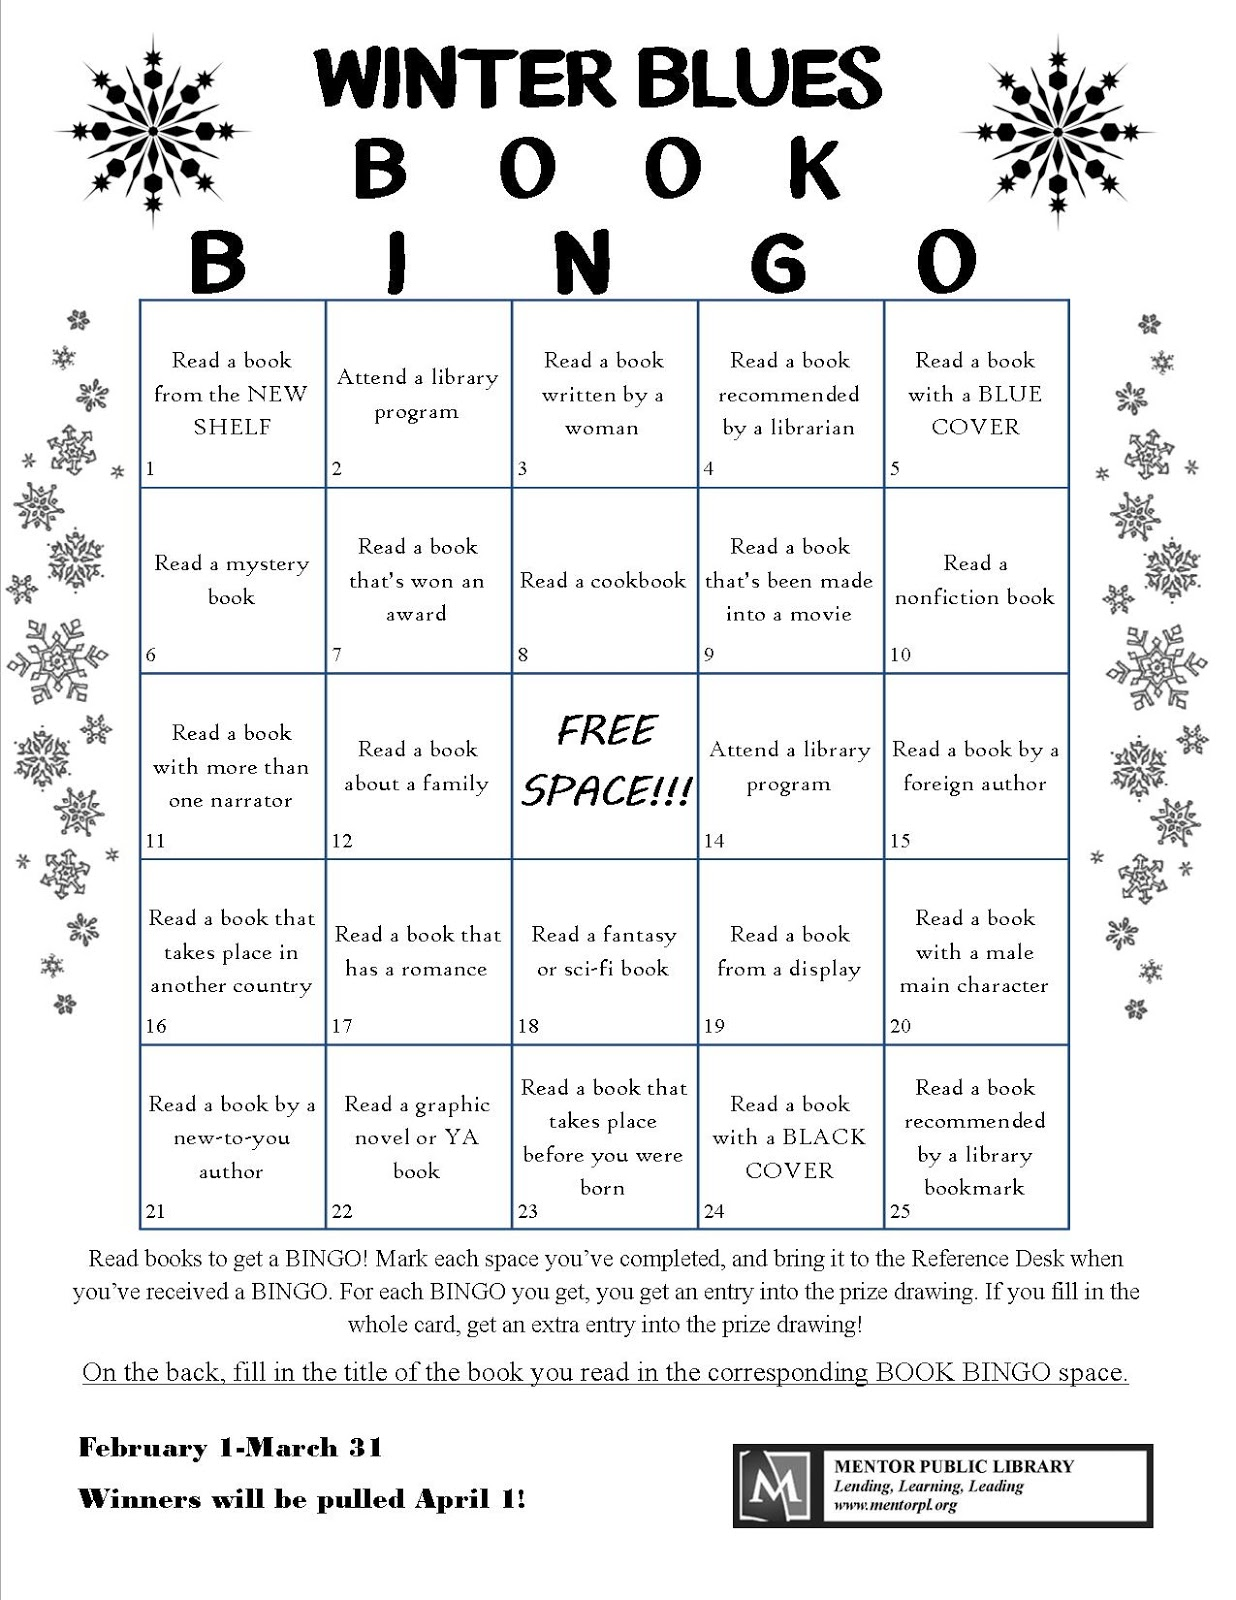 Mentor S Reader Winter Blues Book Bingo